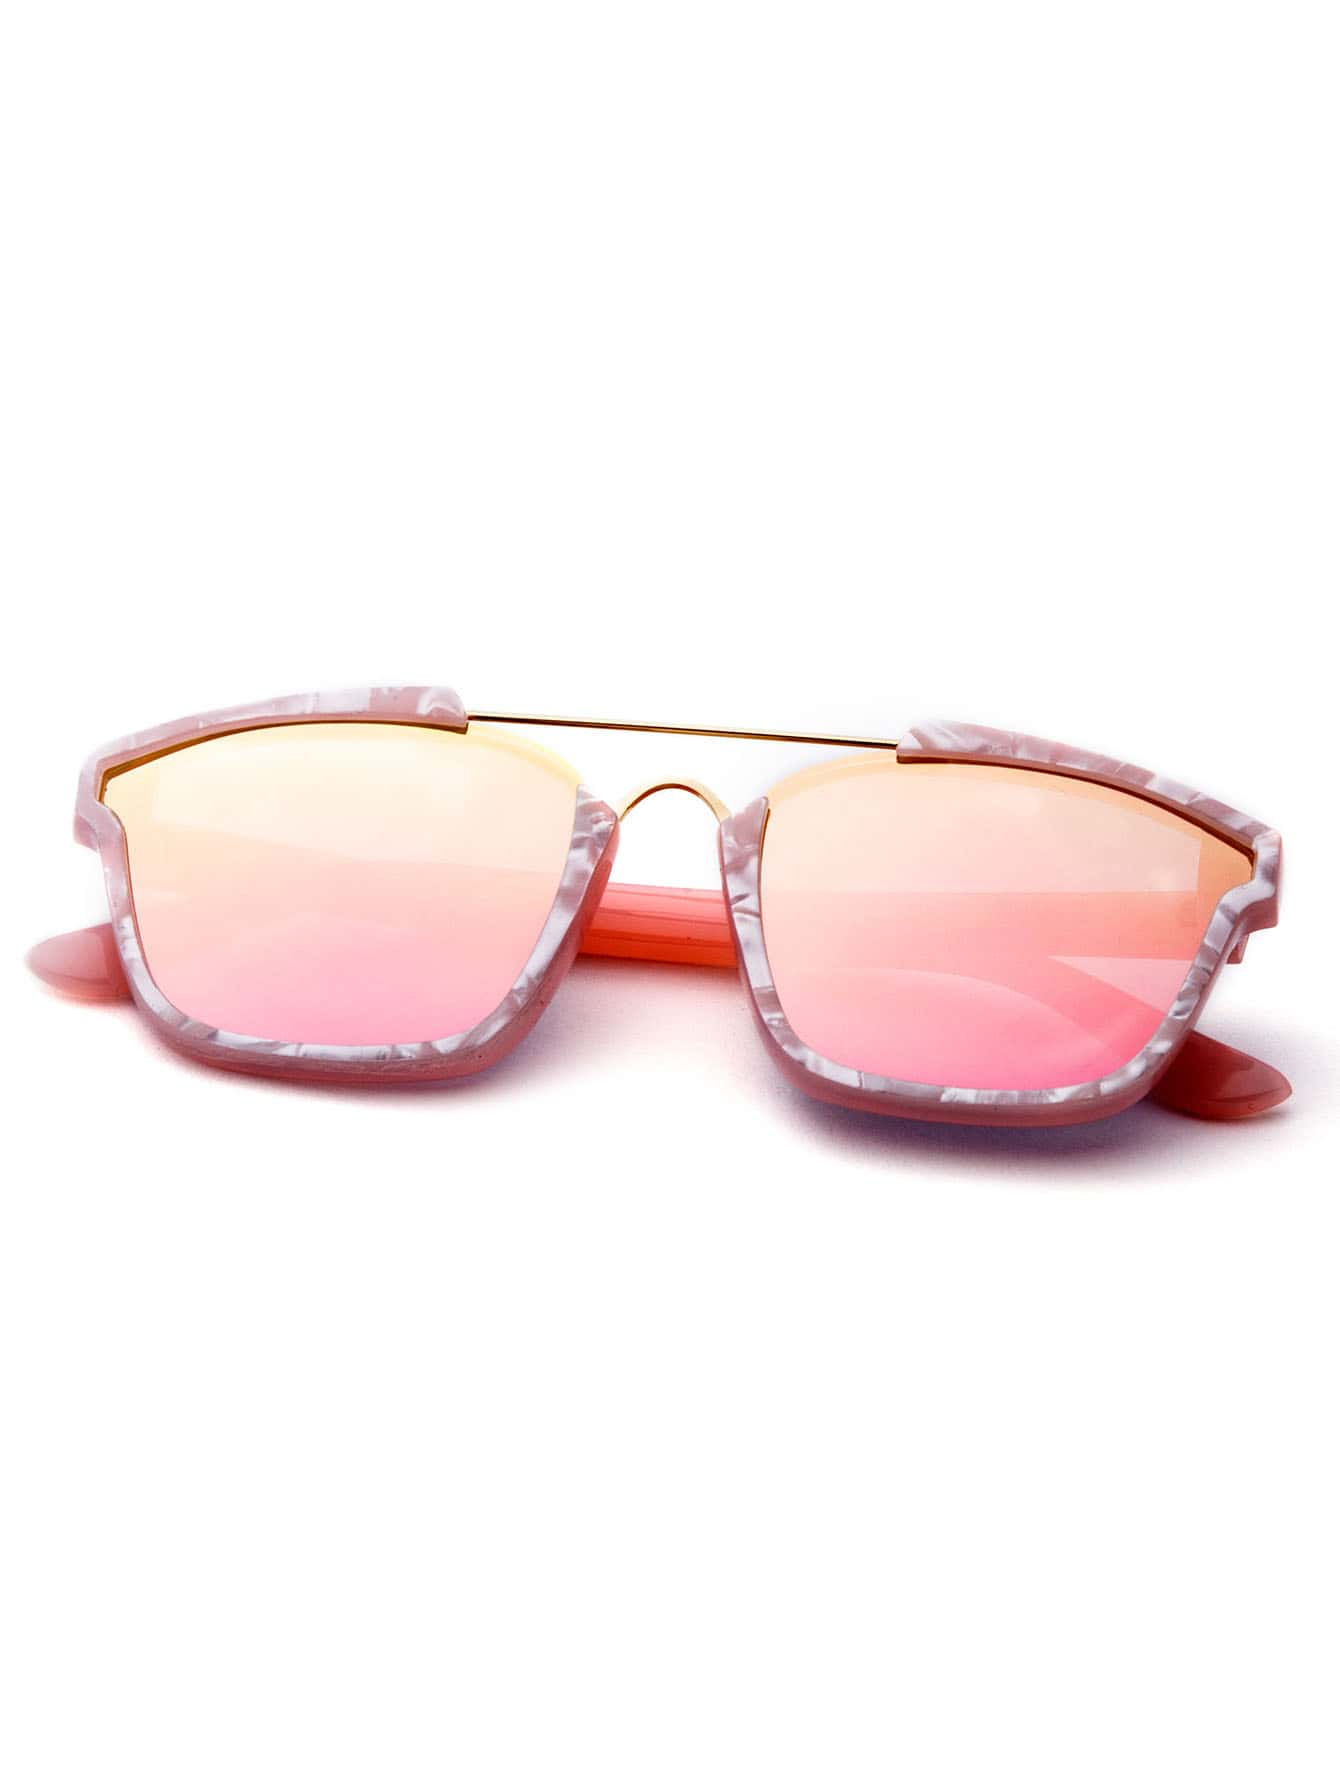 Sunglasses With Gold Frame : Rose Gold Frame Double Bridge Sunglasses